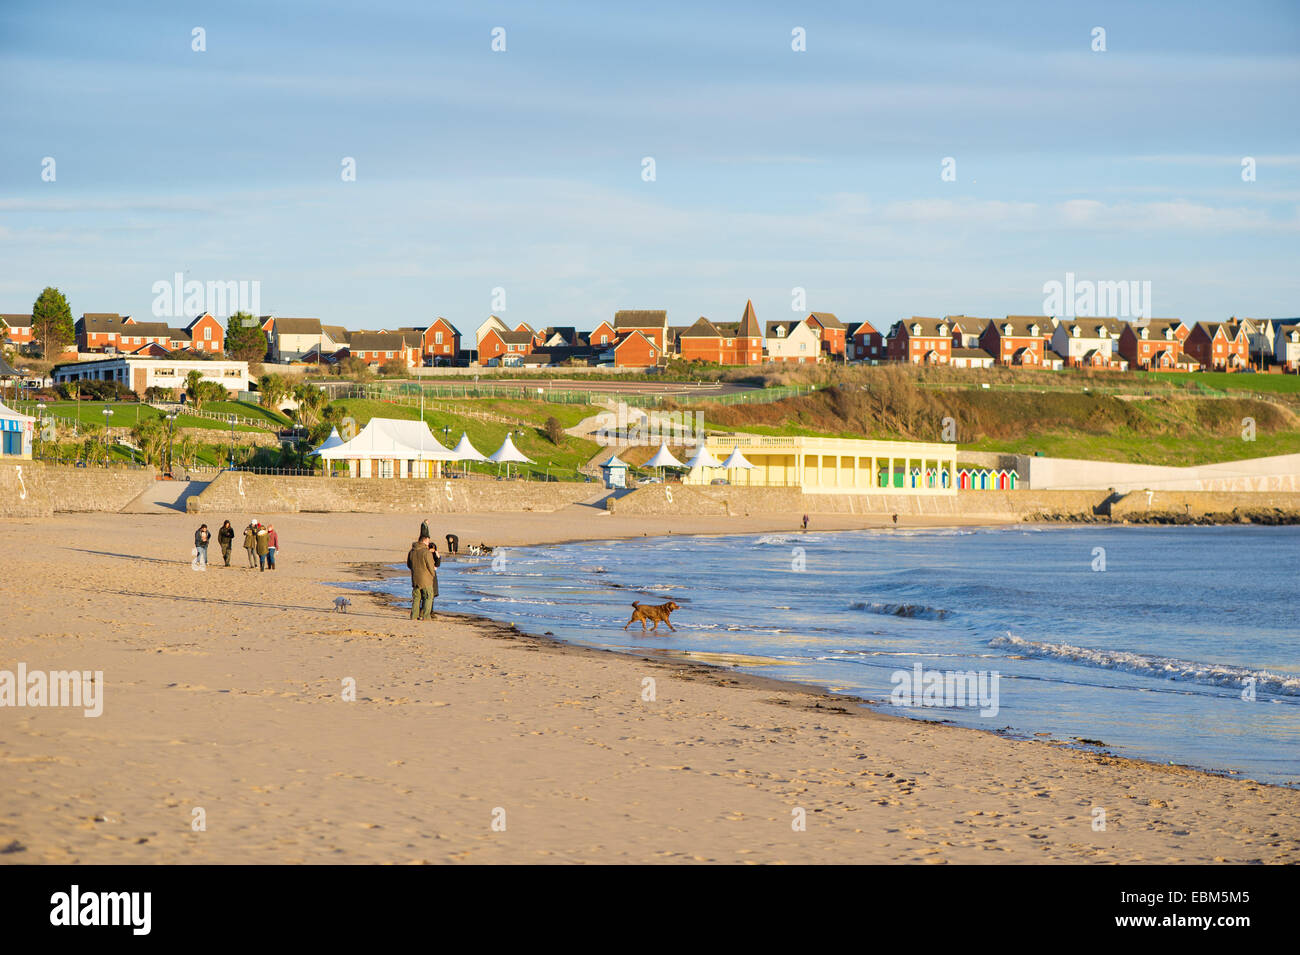 The beach at Barry Island, Wales, UK. Stock Photo